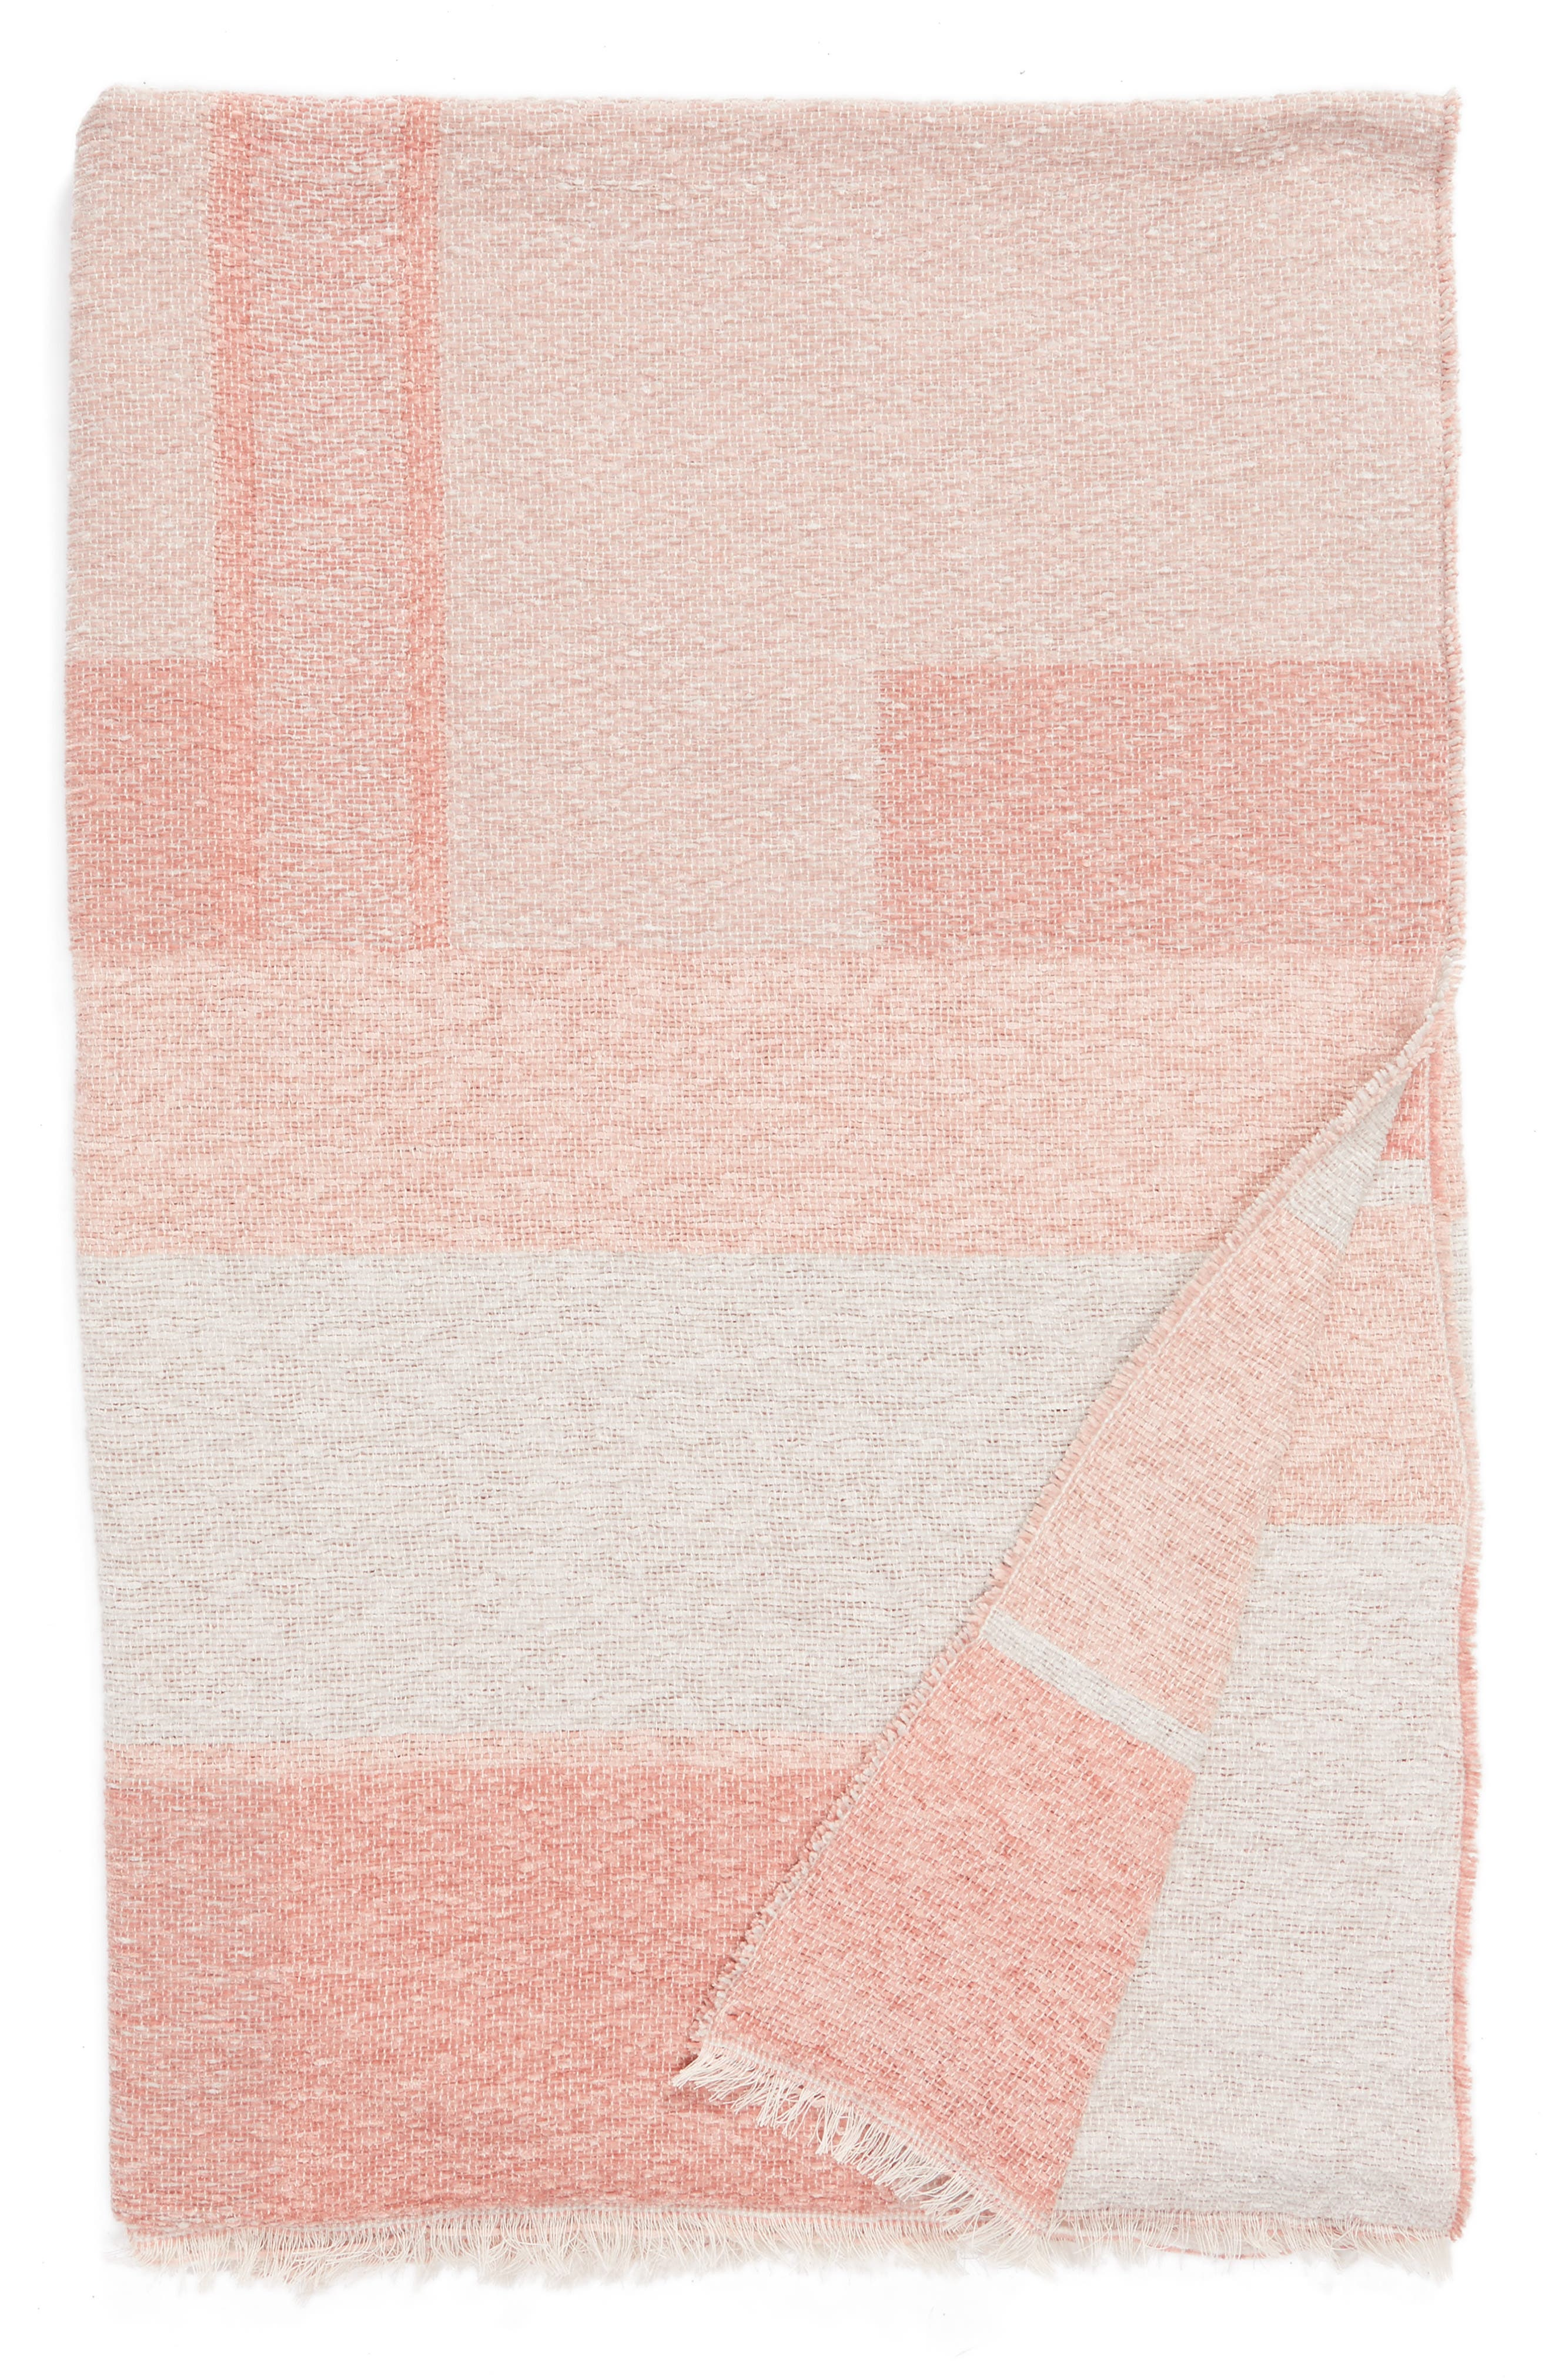 Geo Throw Blanket,                             Main thumbnail 1, color,                             PINK MISTY MULTI